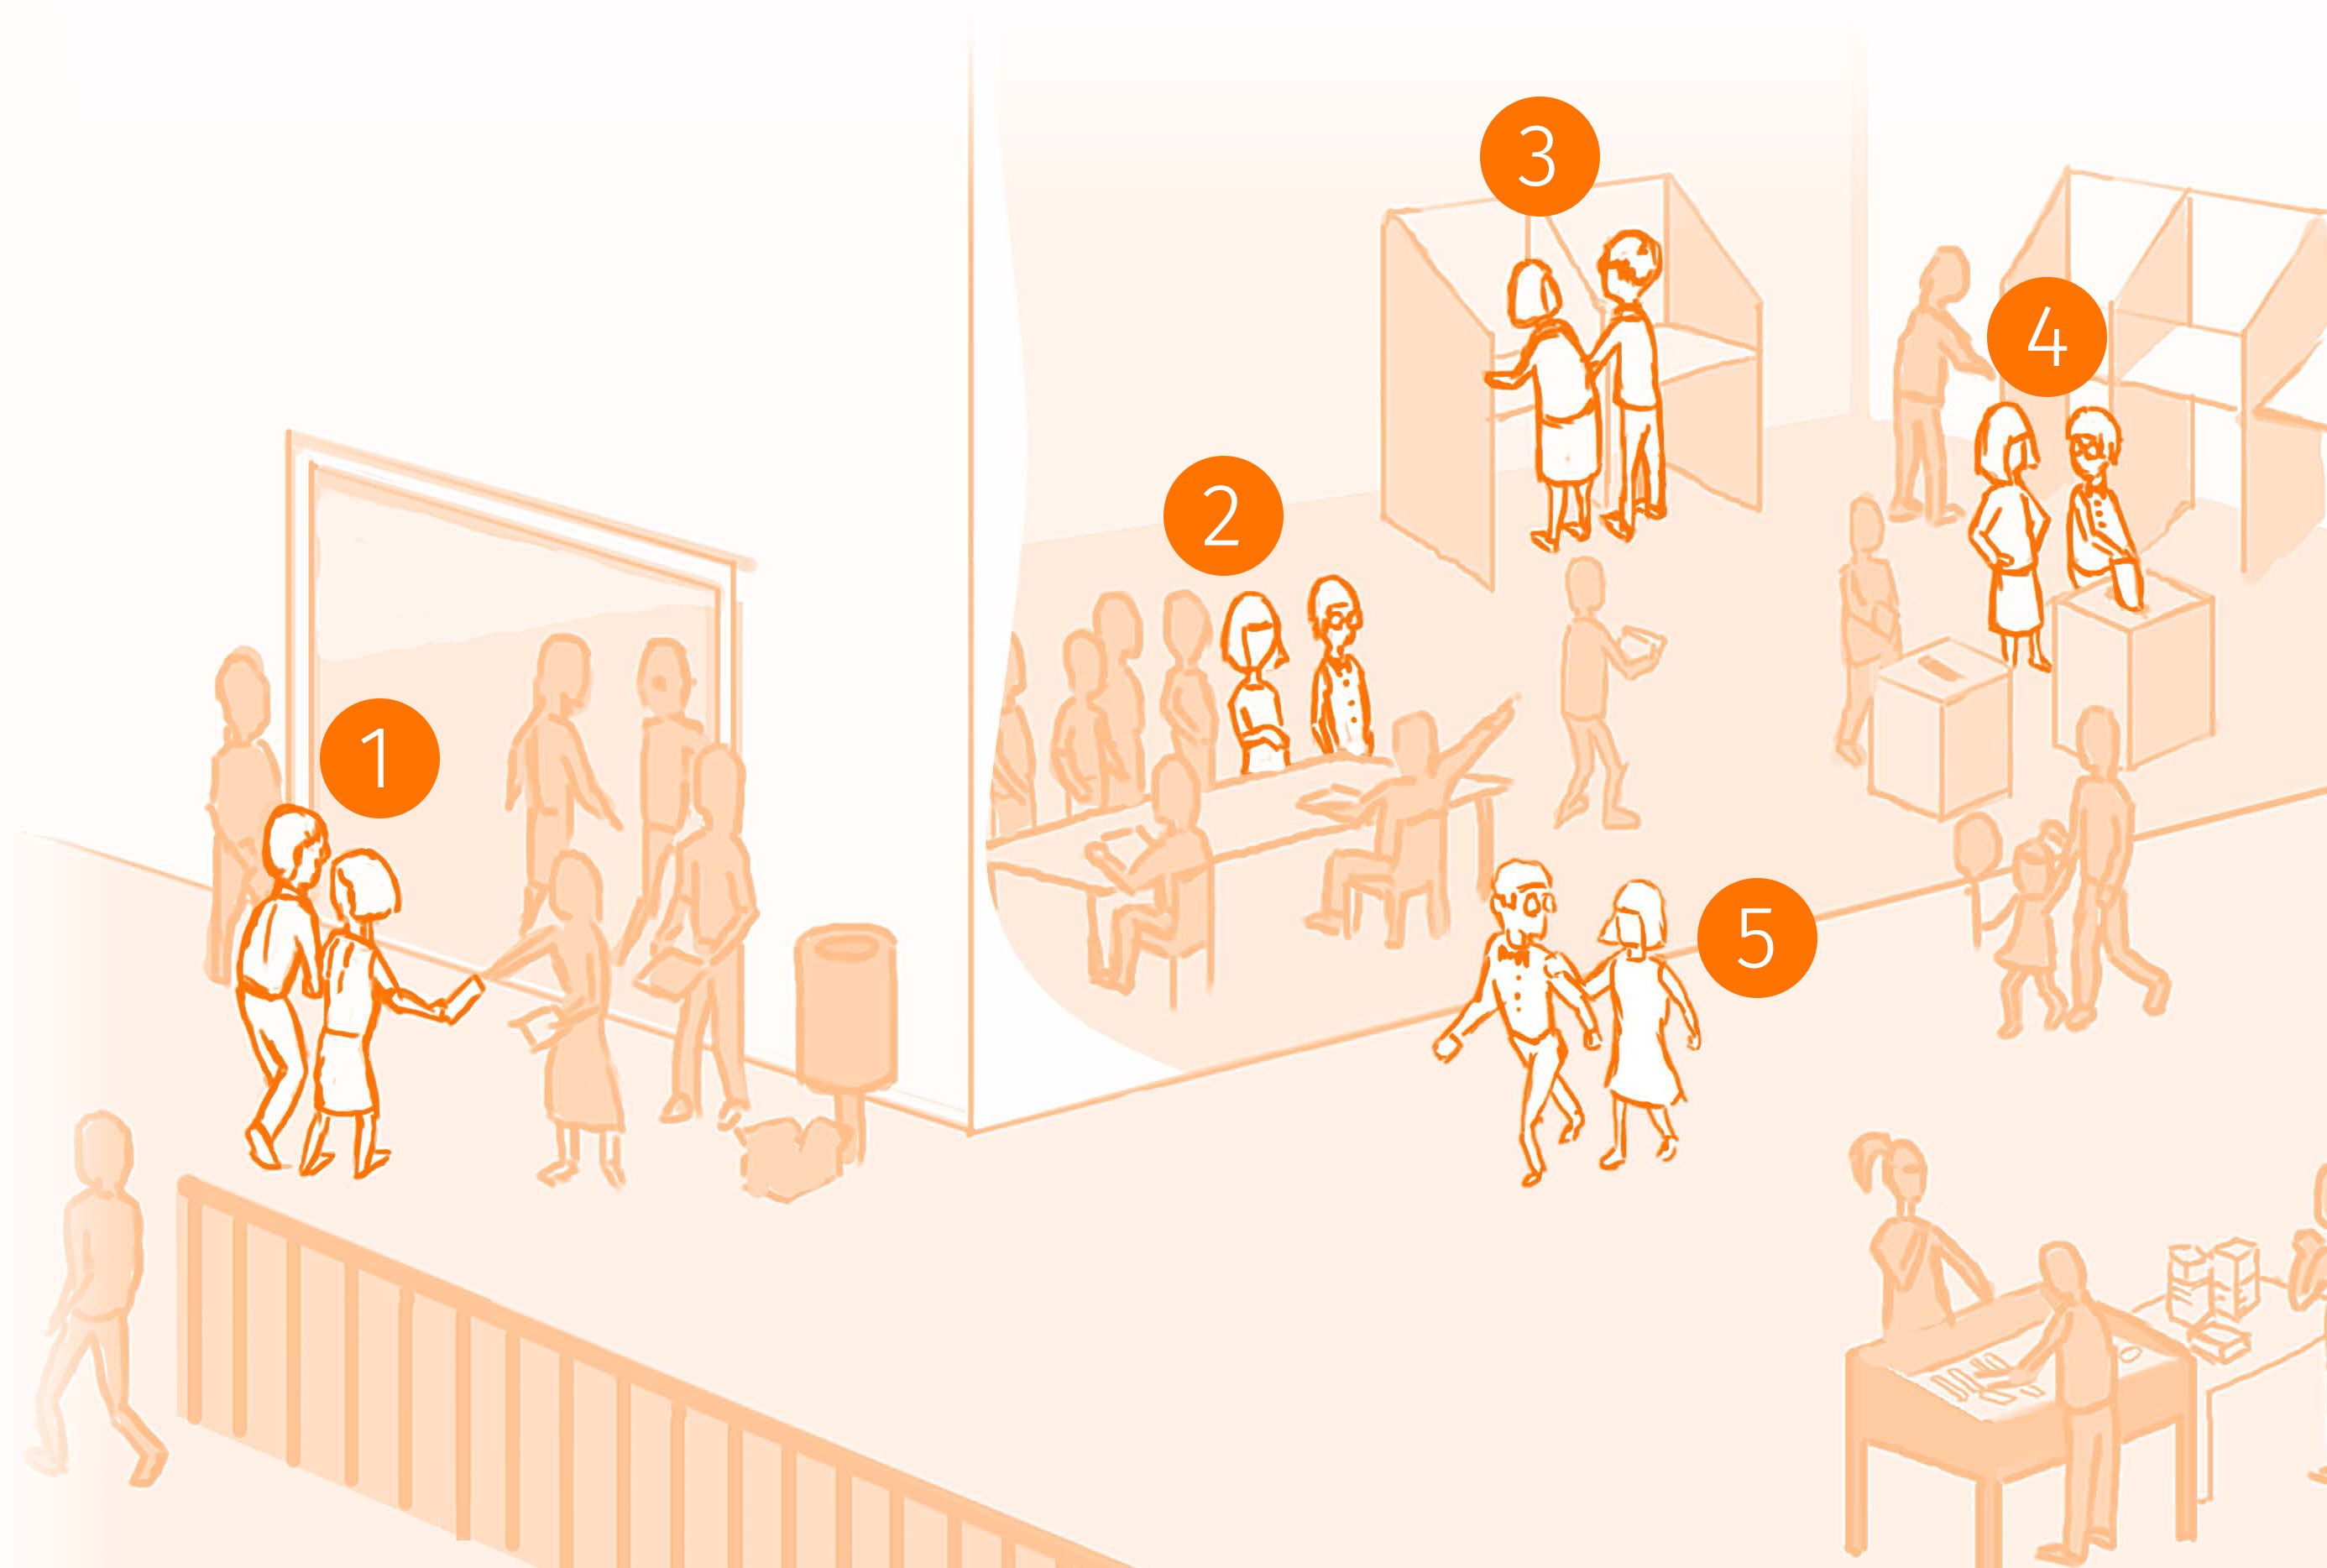 Illustration of a place of voting with the steps one takes to place a vote